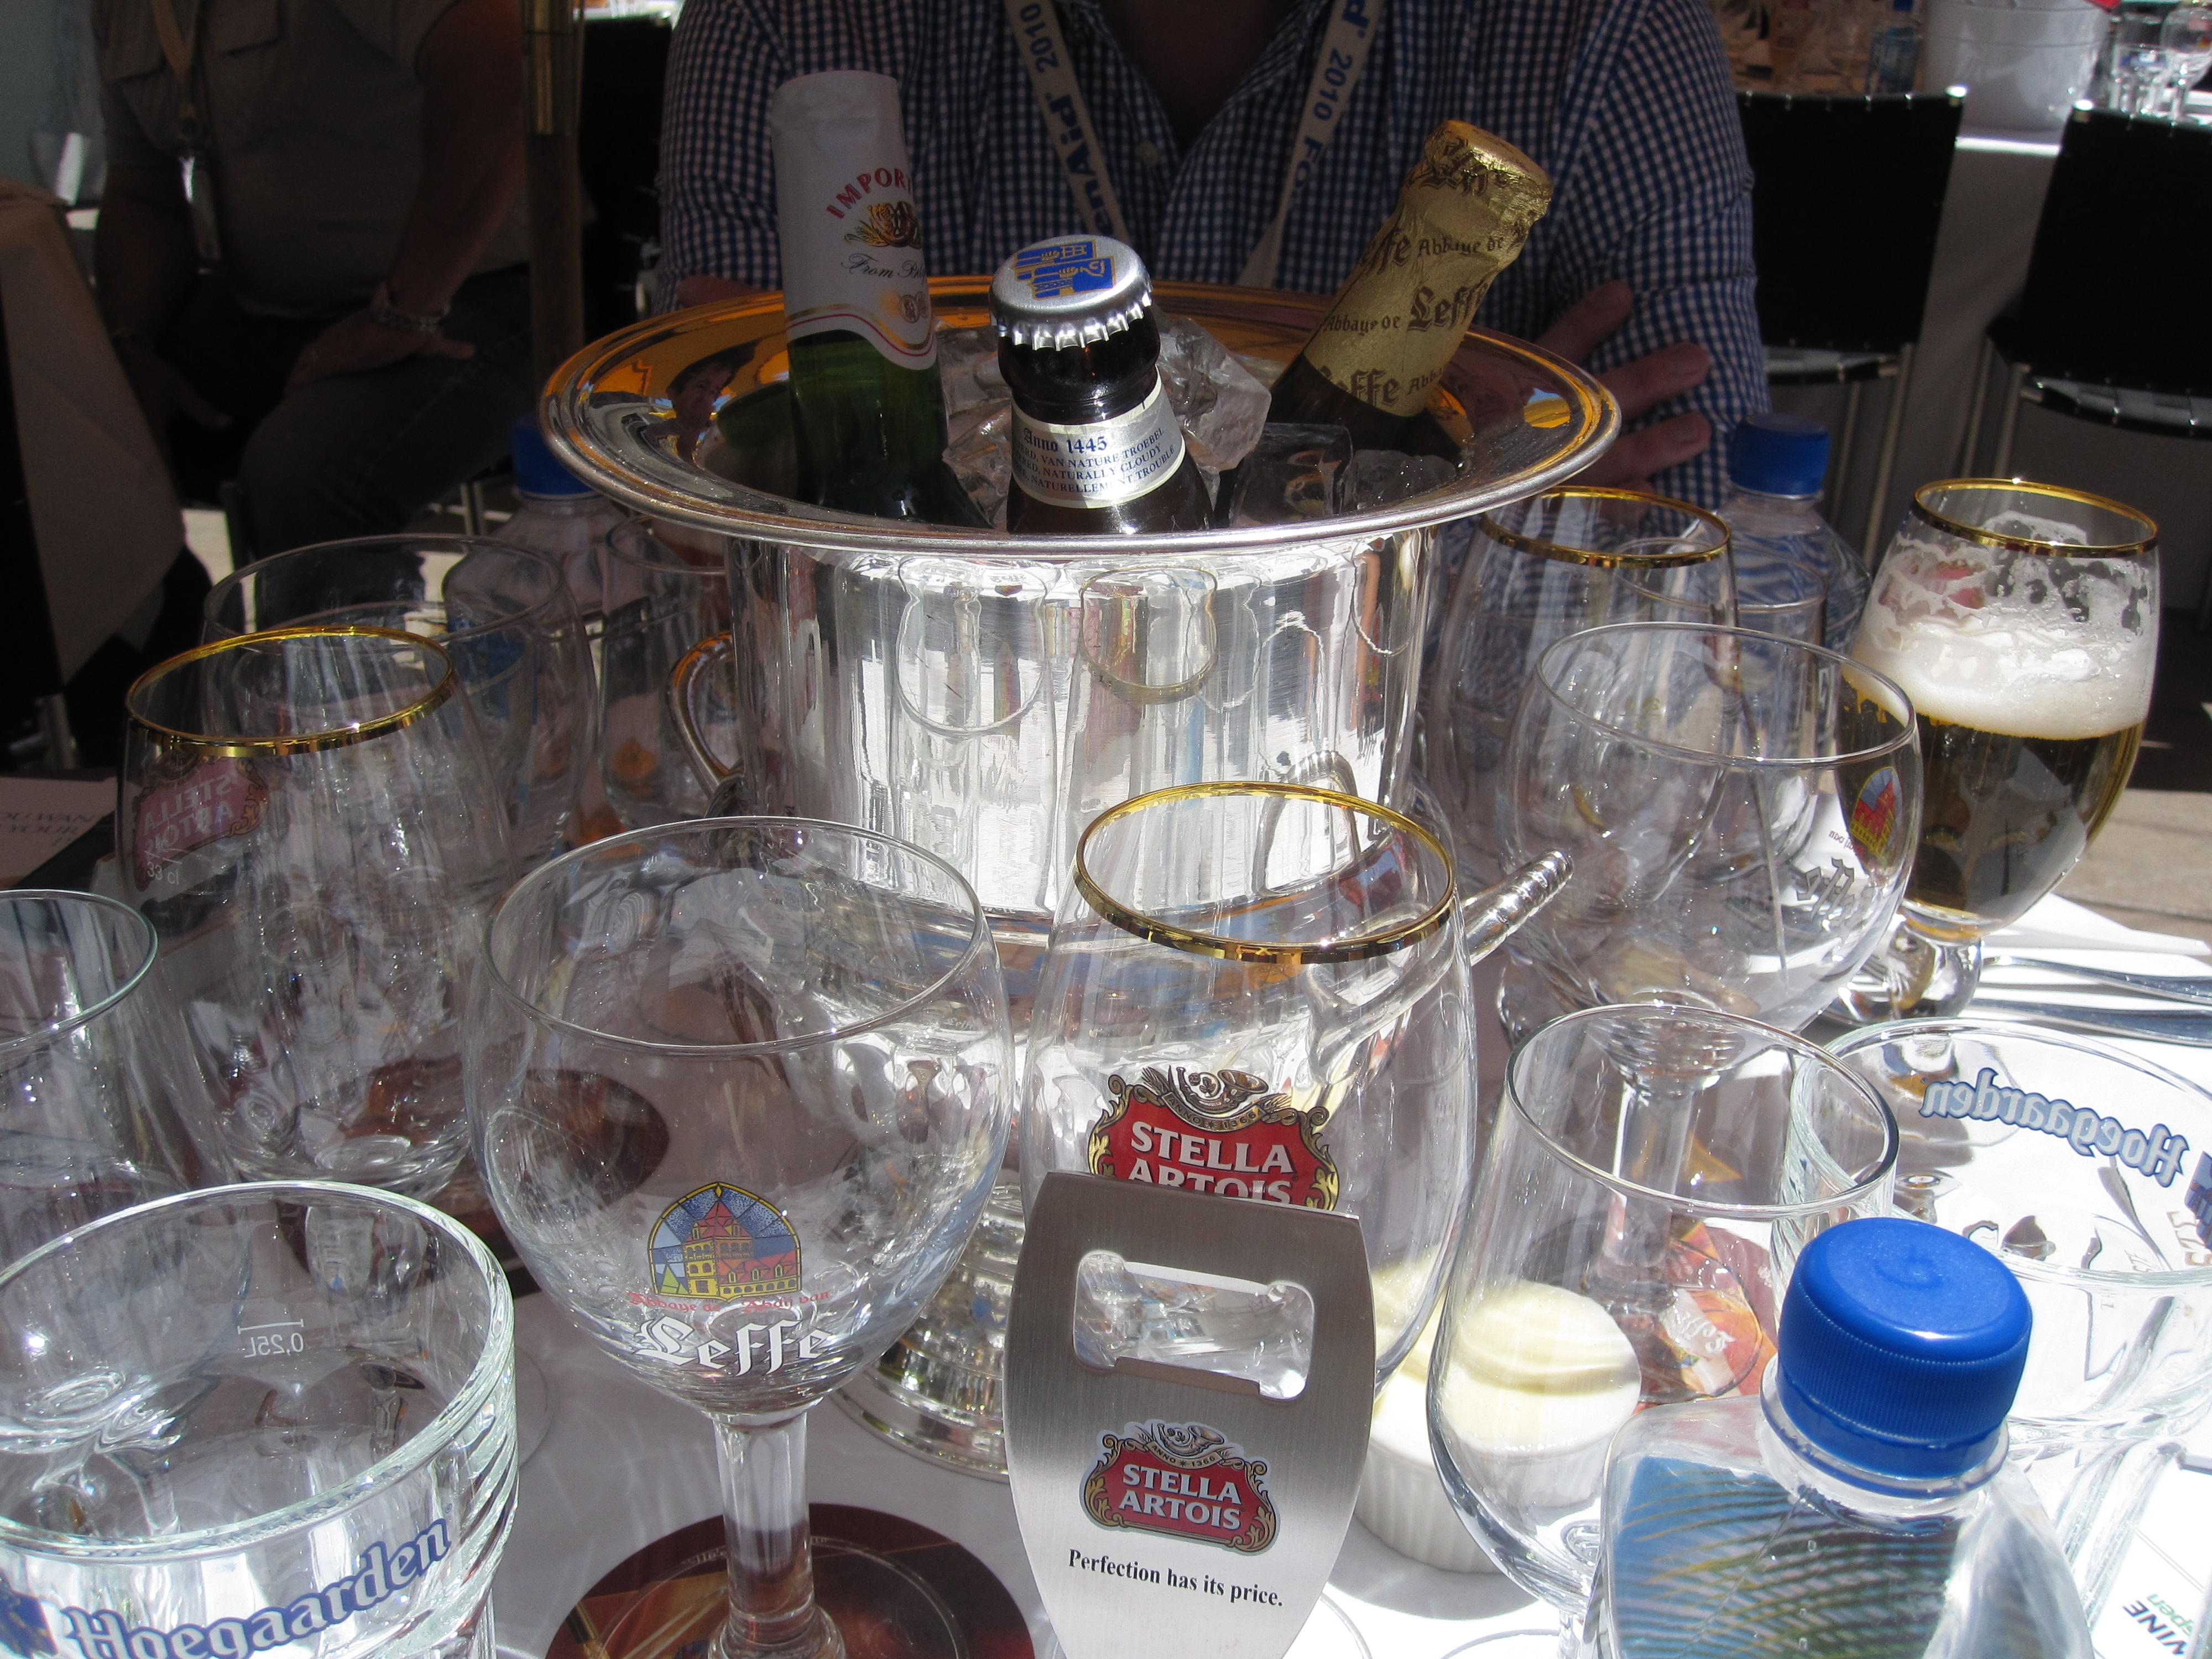 Instead of having a bar, ice buckets were placed in the middle of each table. As a party favor, guests were given a Stella bottle opener. If you wanted a cold beer, you simply opened one at the table! It was fun.